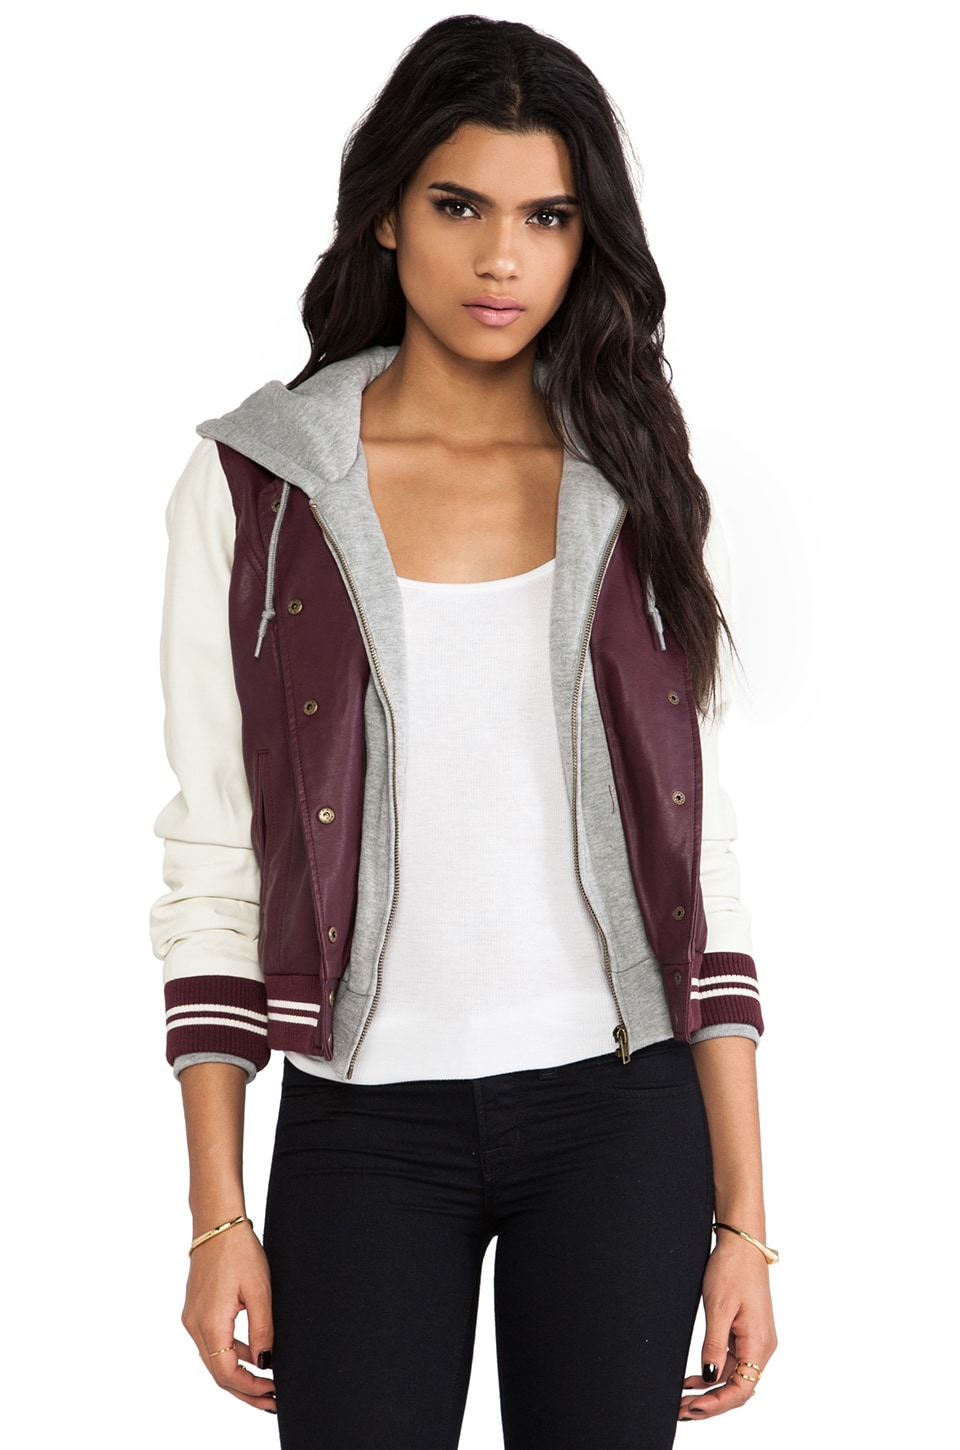 Obey Varsity Lover Jacket in Port Royale & Cream